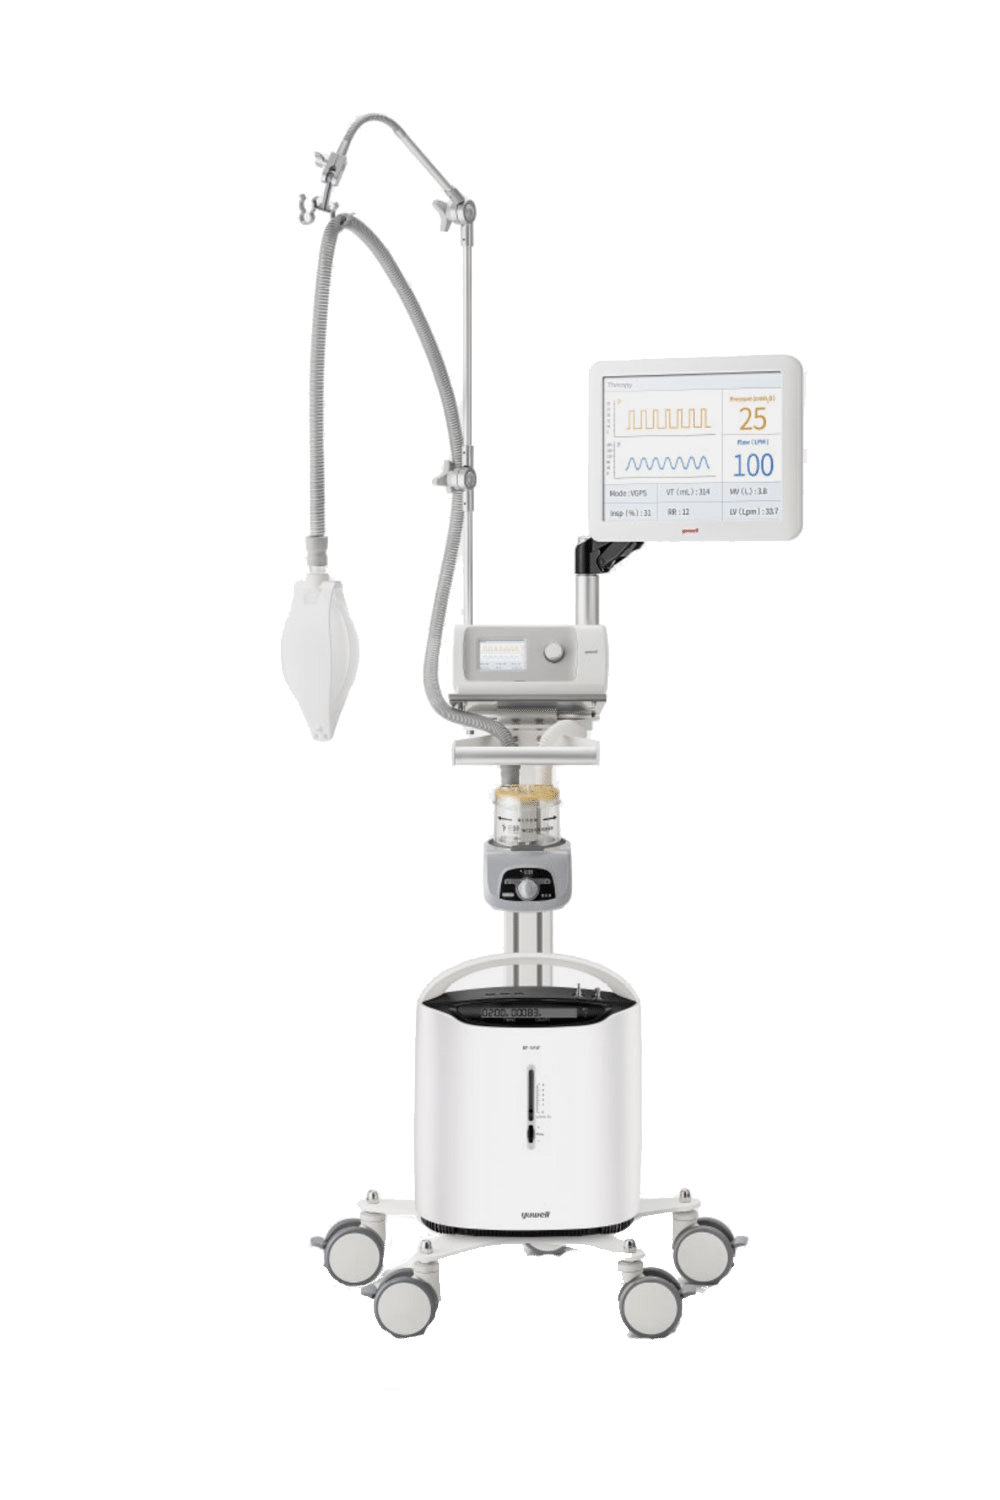 Ventilator Machine YH-830 Bi-level Units. A machine that breathes for you if your respiratory pathways have been blocked in any way (because of an accident, pneumonia, etc).